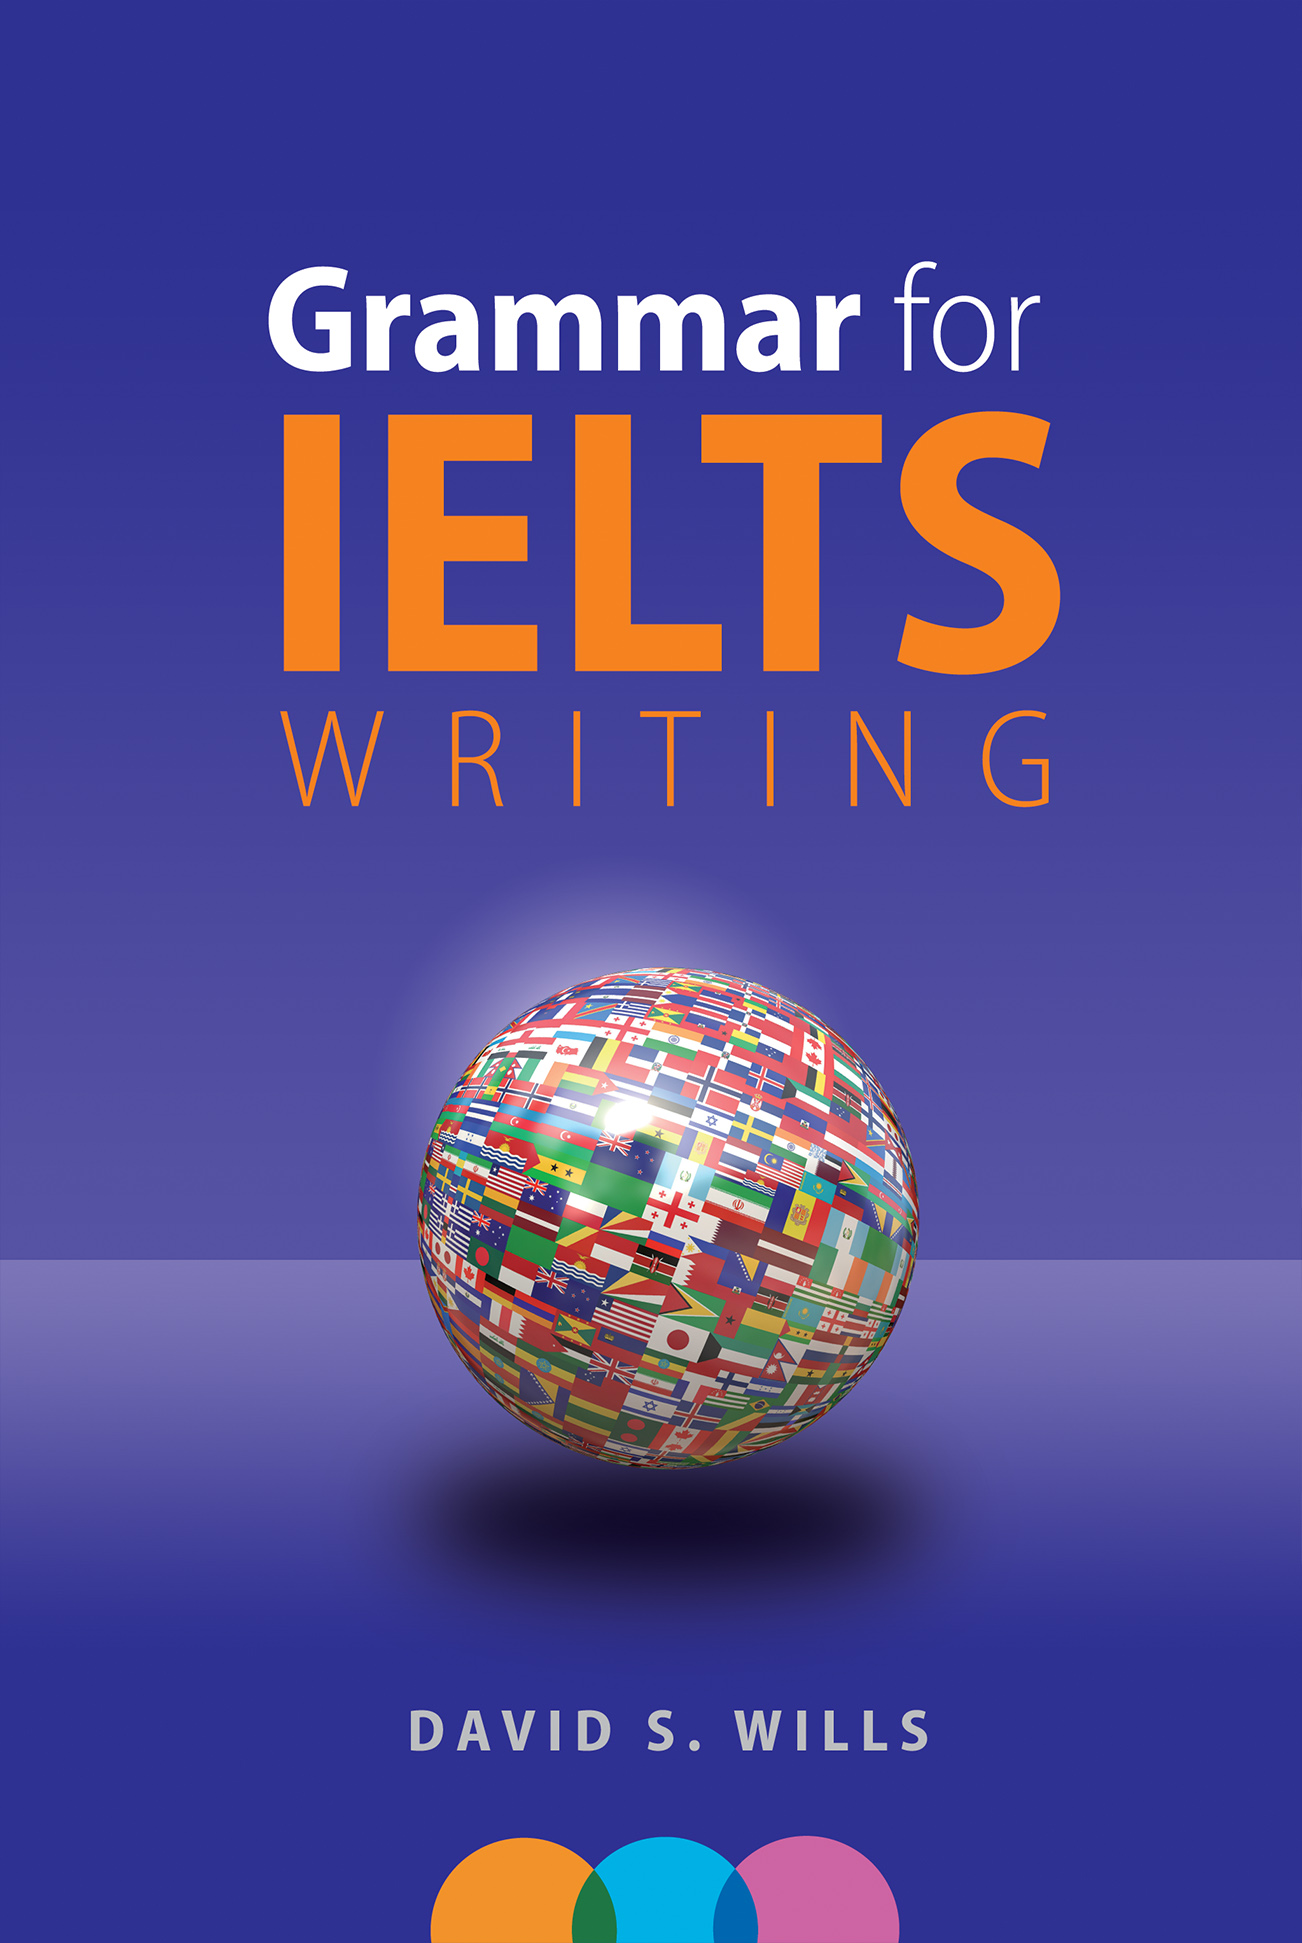 new cover Small - How to Use More Advanced Vocabulary for Task 1 [IELTS Writing]